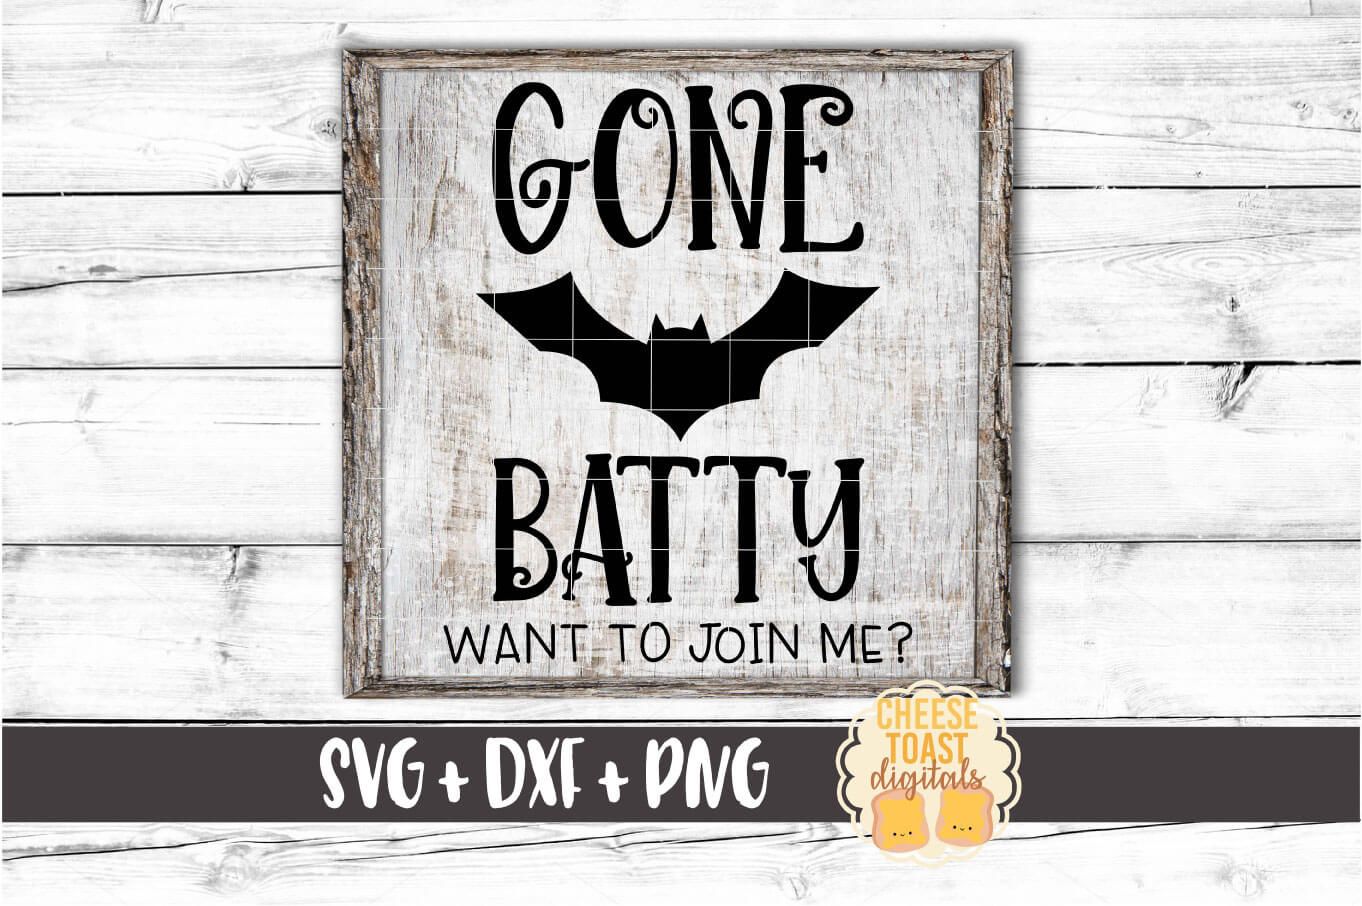 Gone Batty Want To Join Me?